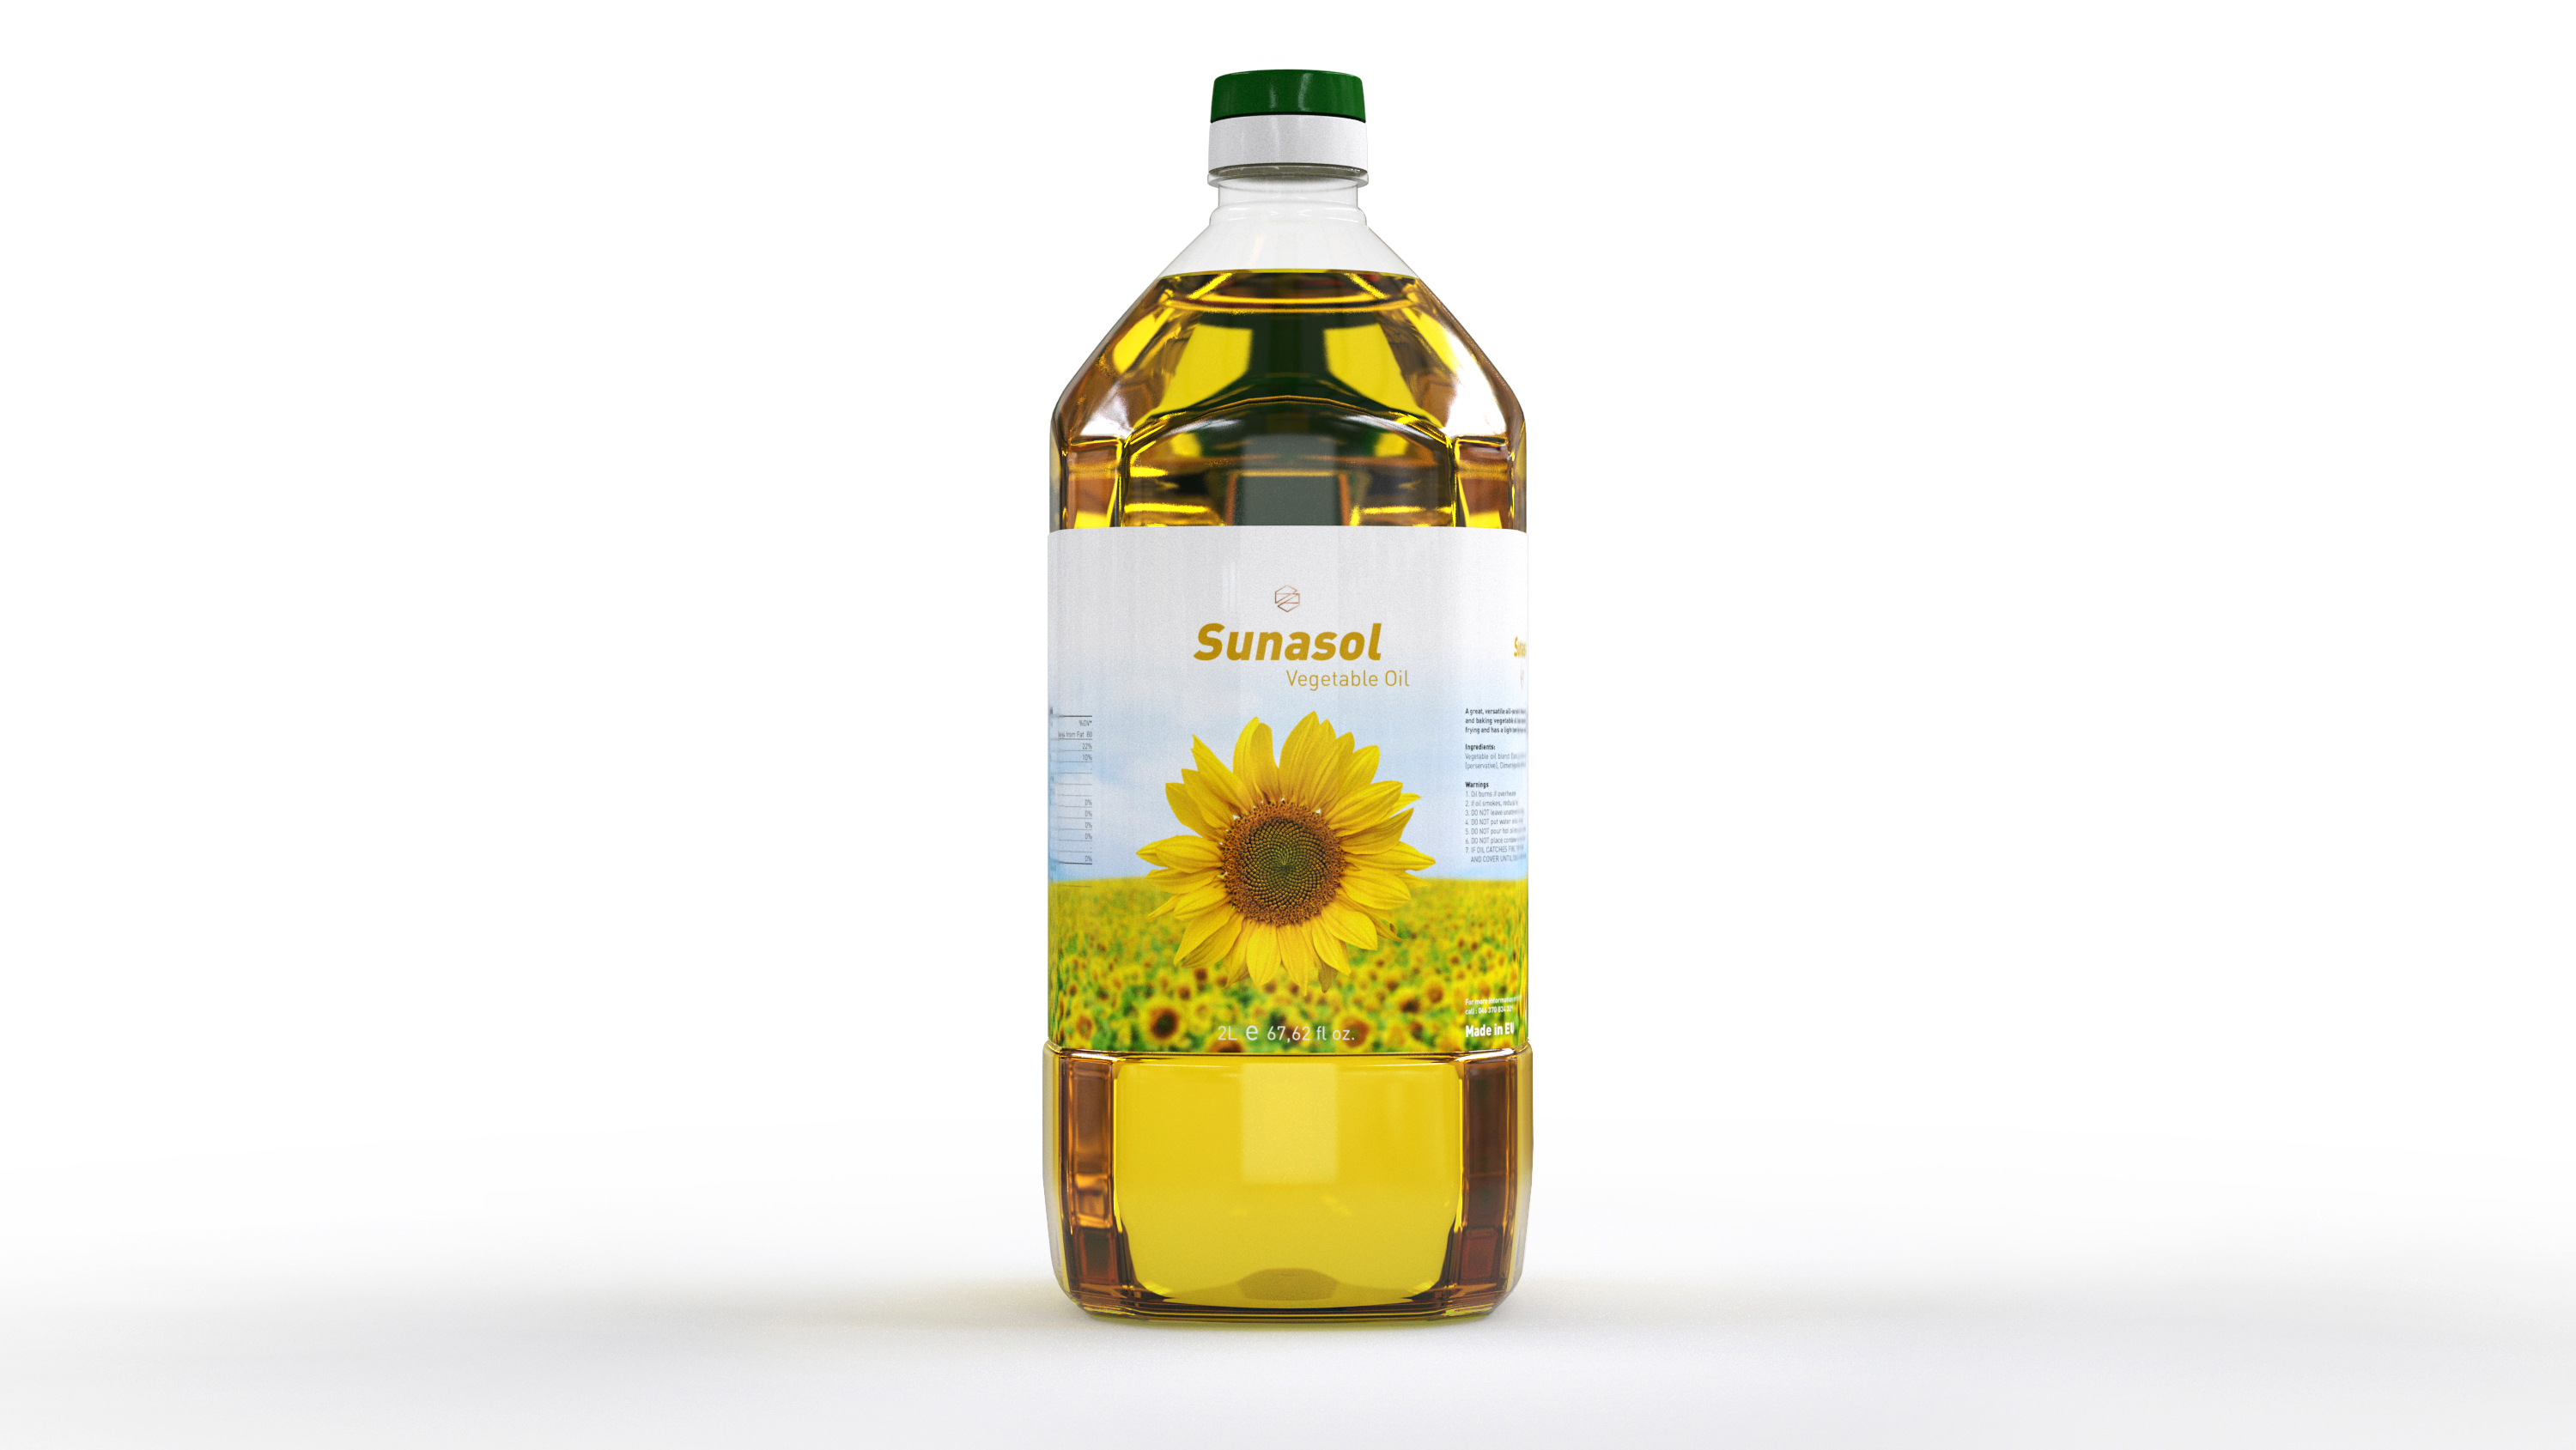 170502_Twings 3D_Sunasol Vegetable OIL_Render